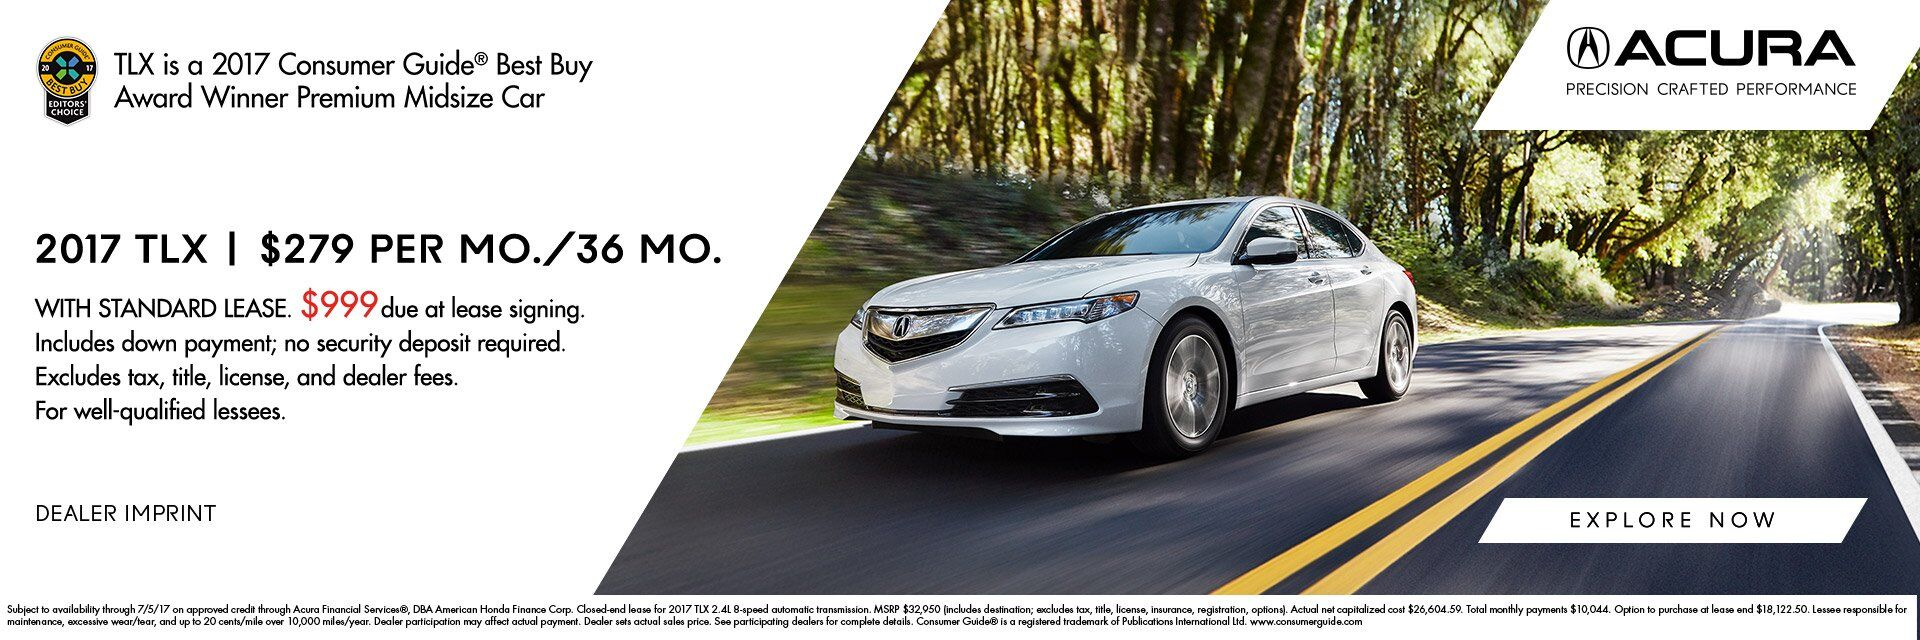 2017 TLX $279 Lease – 2017_TLX_05.02_07.05.17